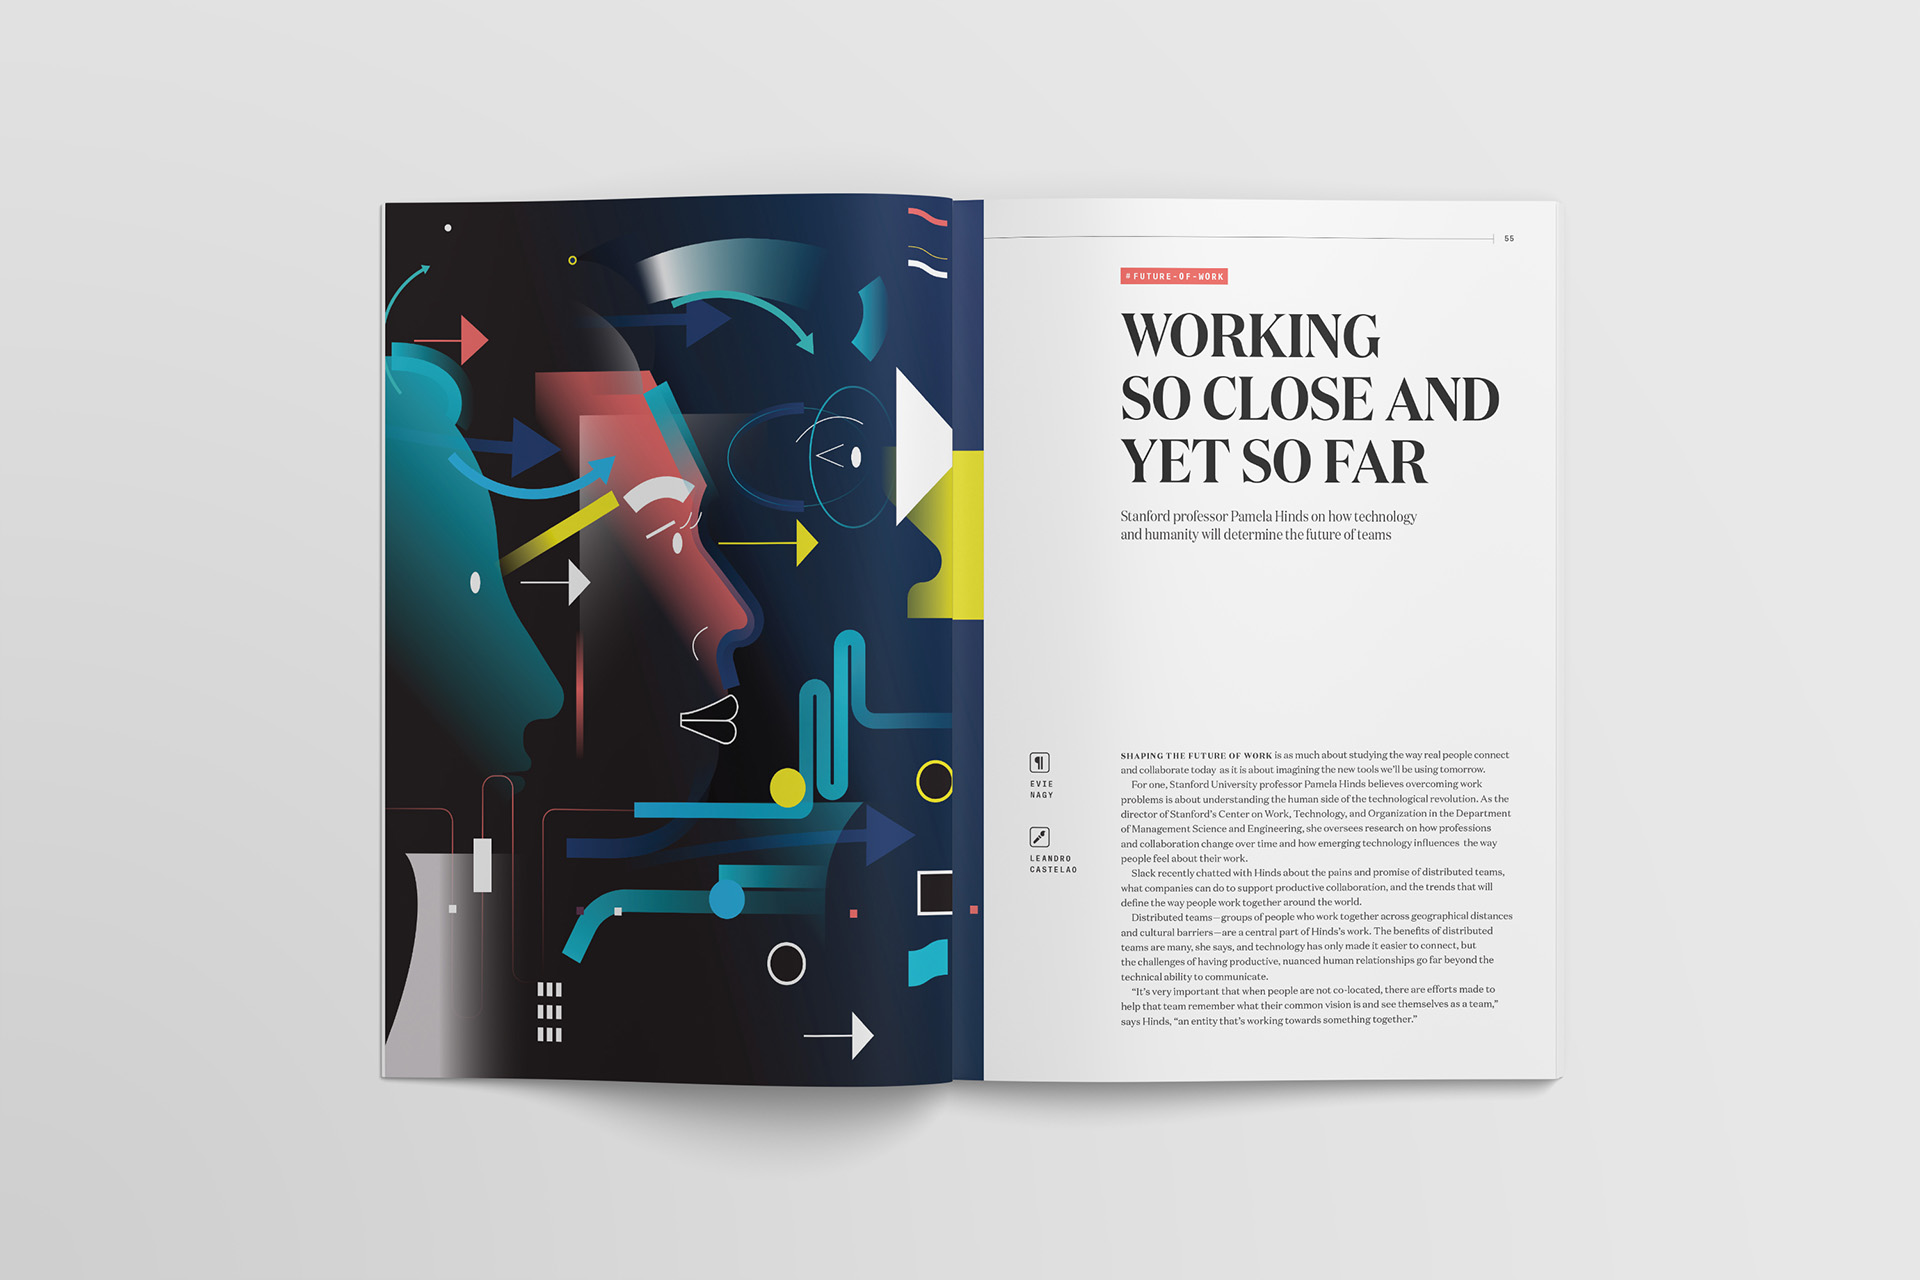 Leandro Castelao's custom article illustration for a piece about remote and distributed work teams commissioned by Slack for Channels magazine